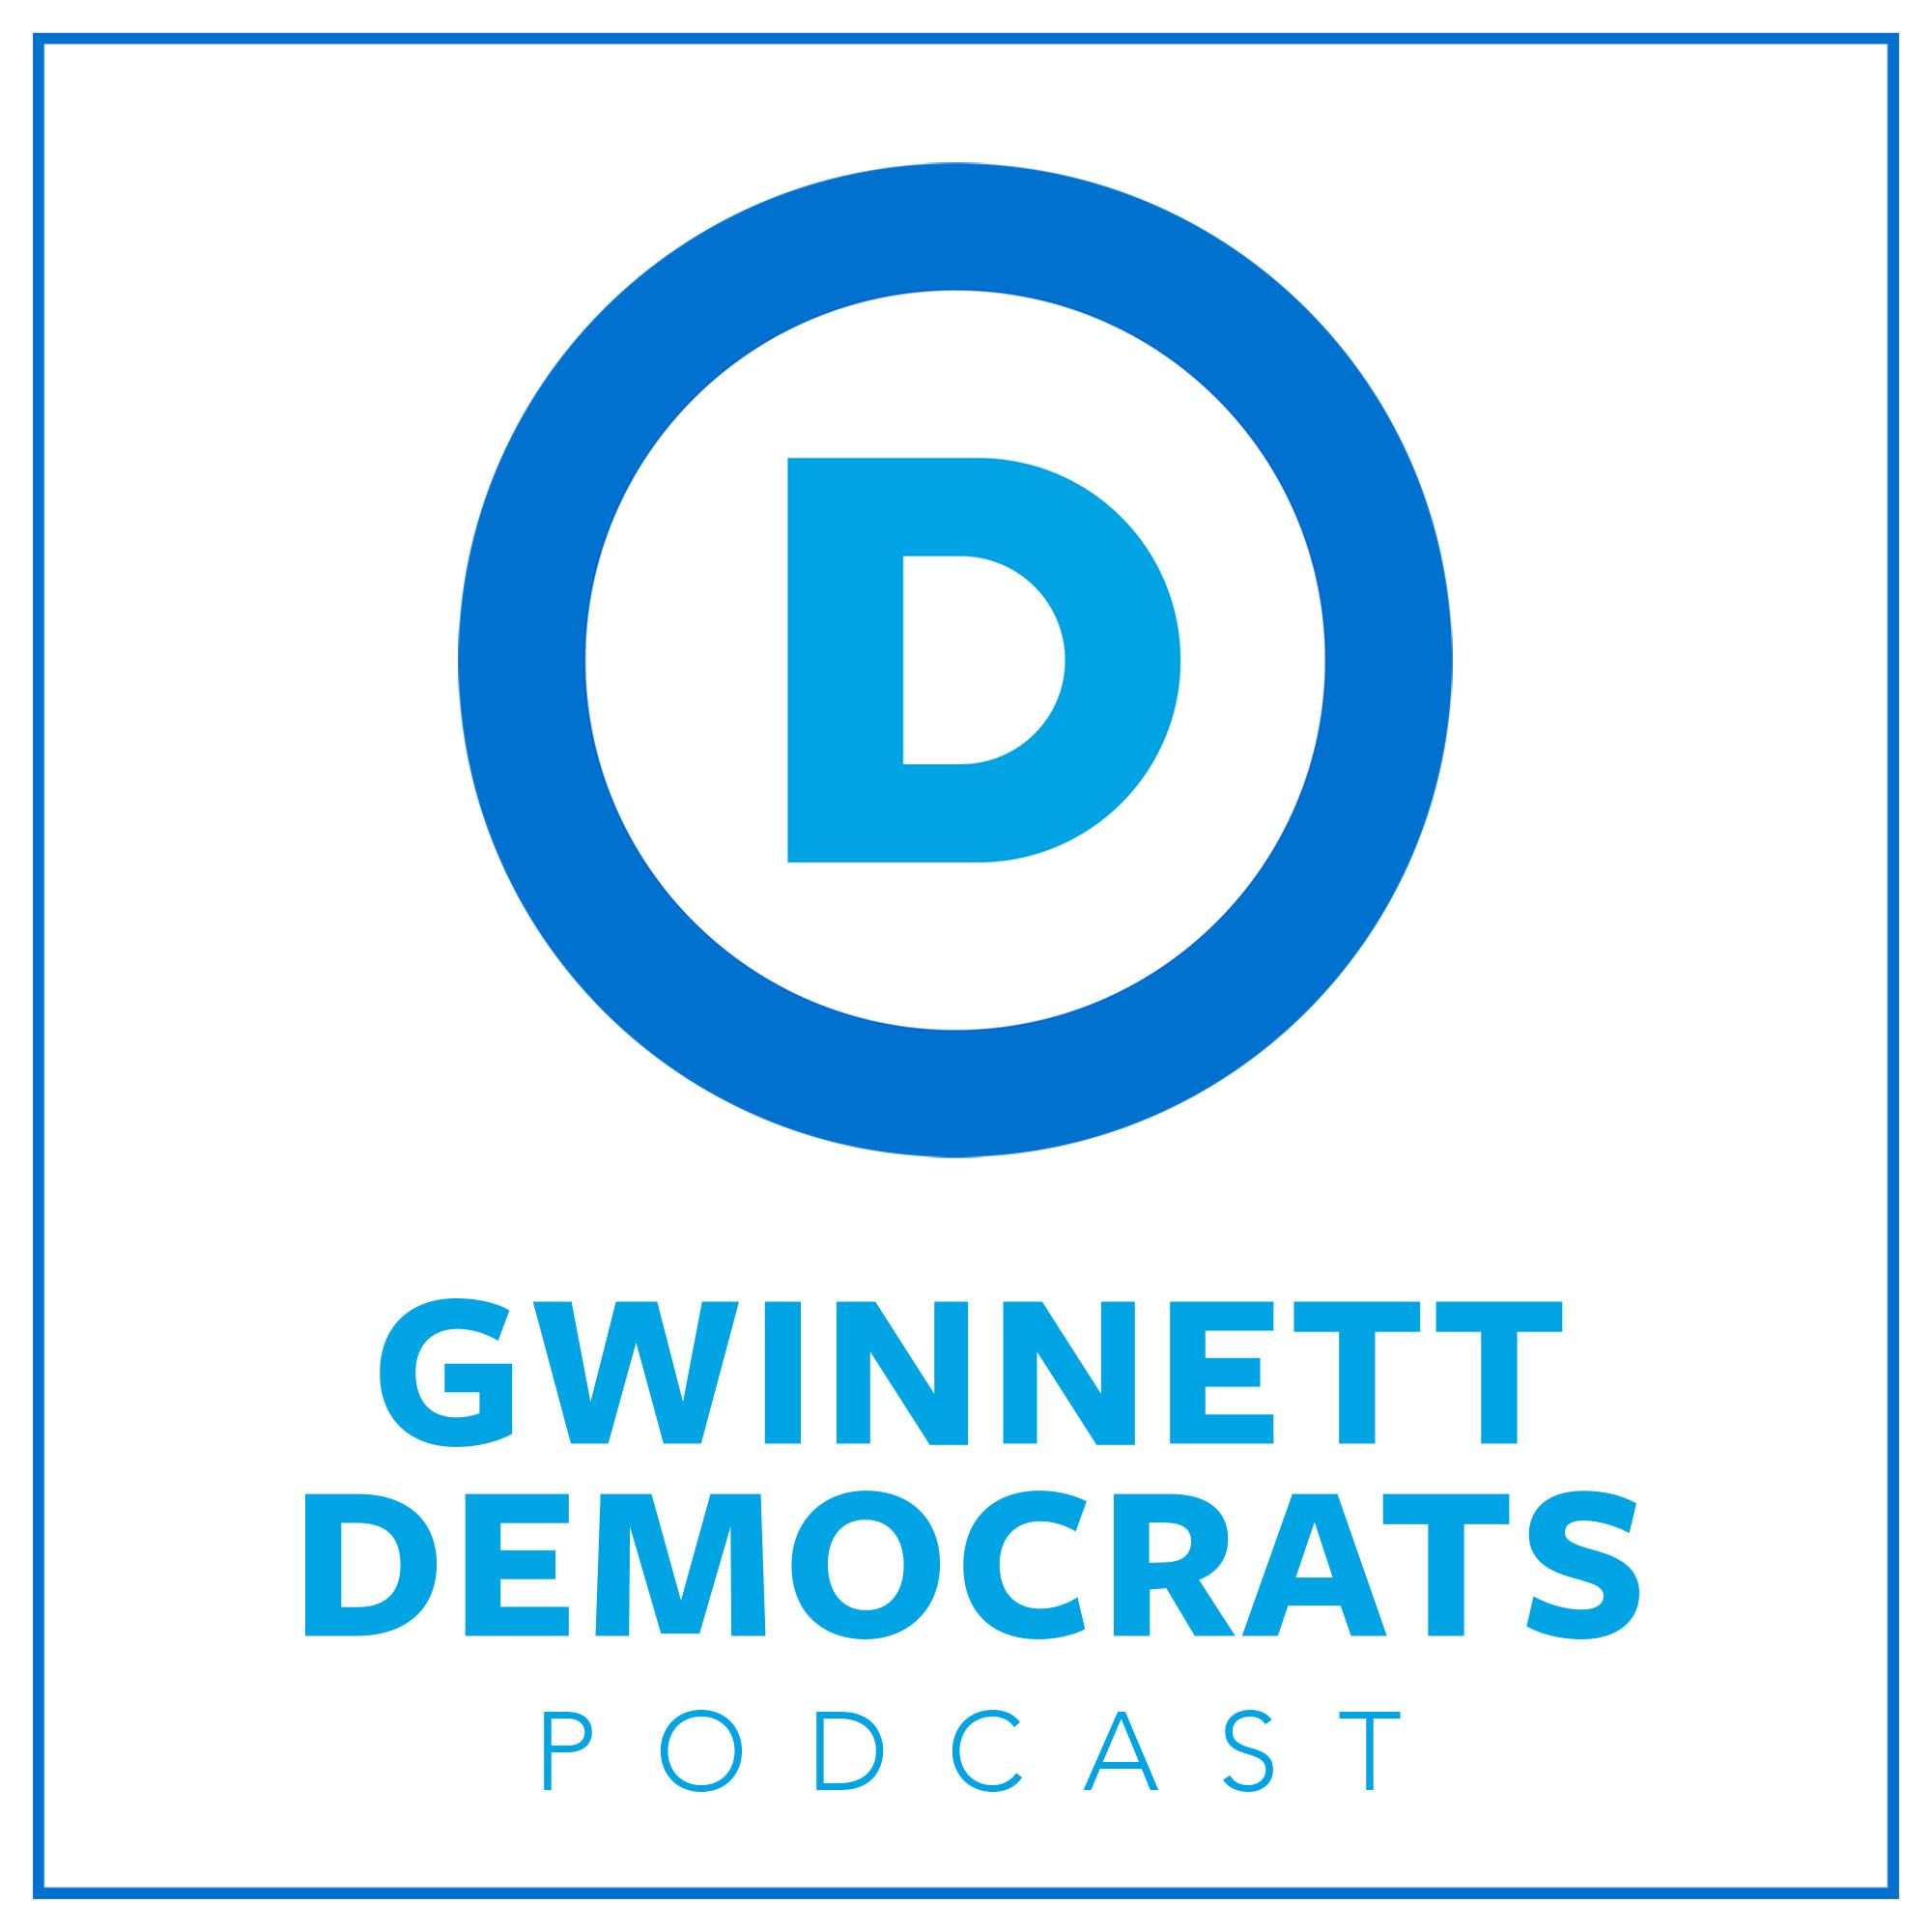 1: Welcome to the new Gwinnett Democrats Podcast